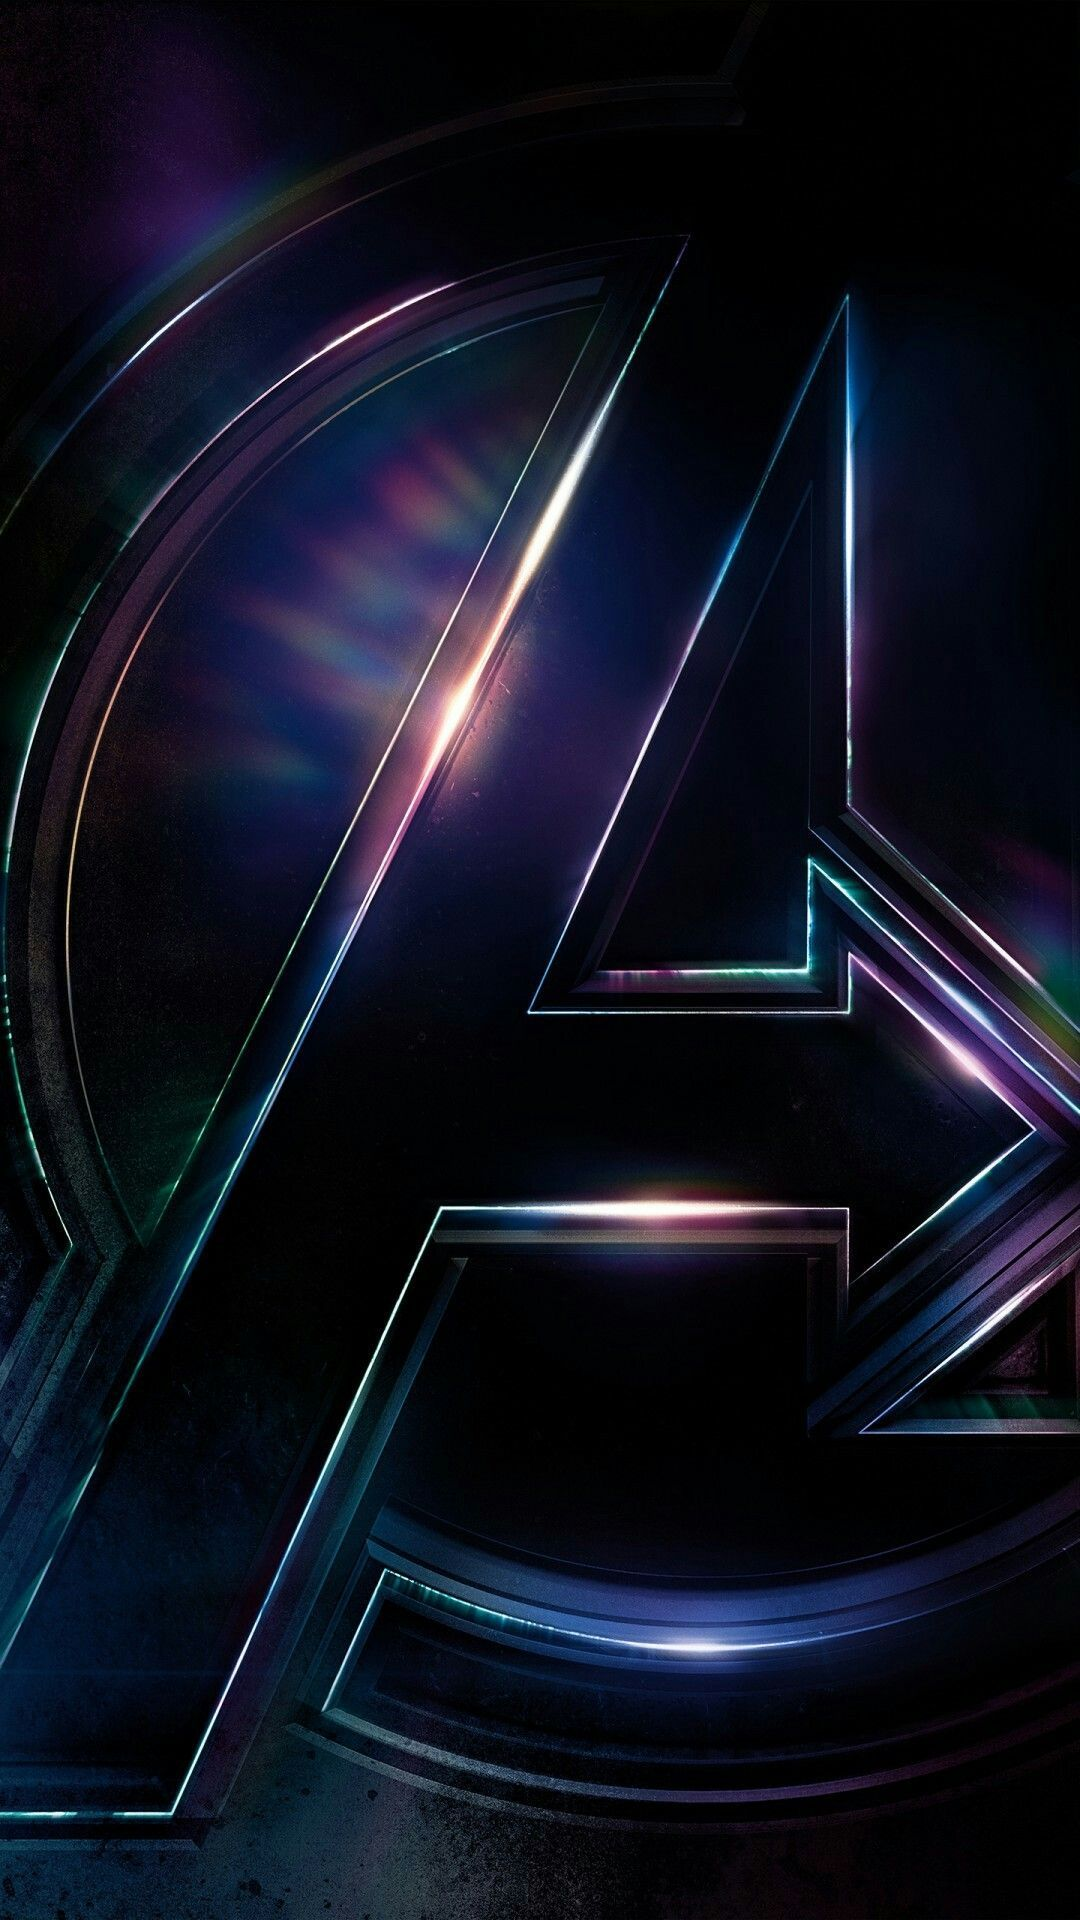 Avenger Endgame Wallpaper iPhone e4bc2d0b5d9ceea15f6ed446acf5465f - iPhone X Wallpapers HD